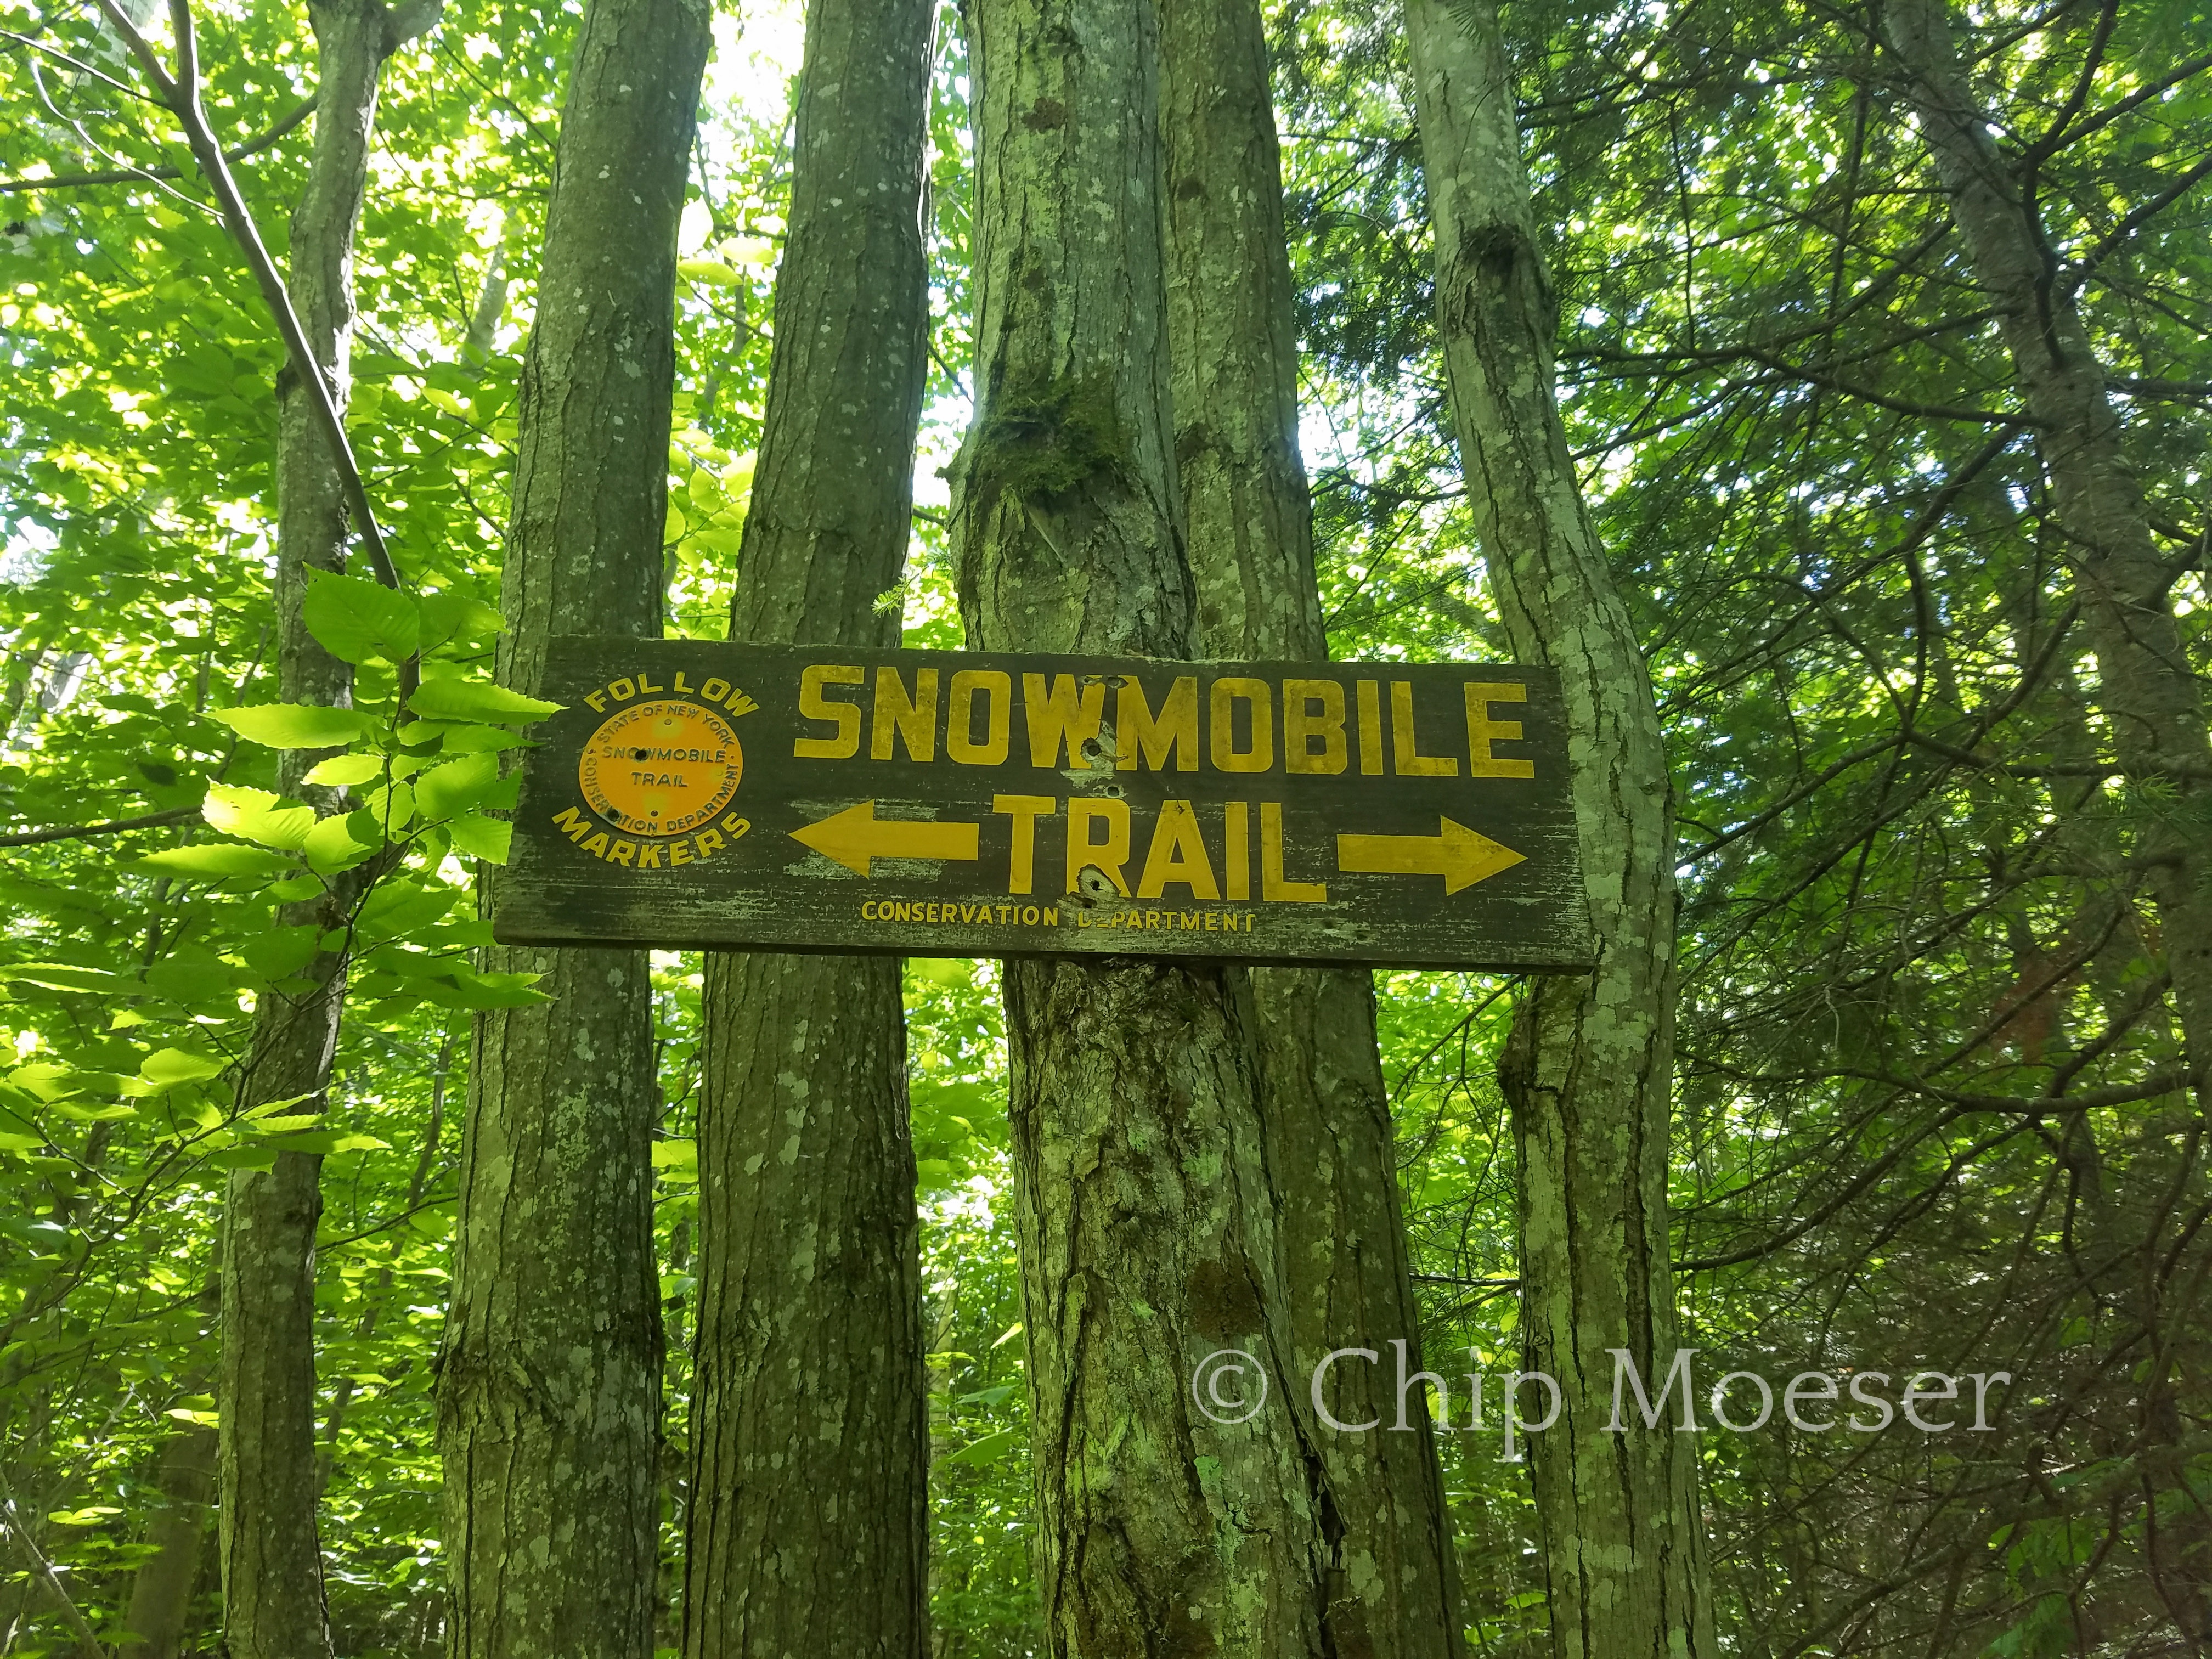 Snowmobile Trail sign